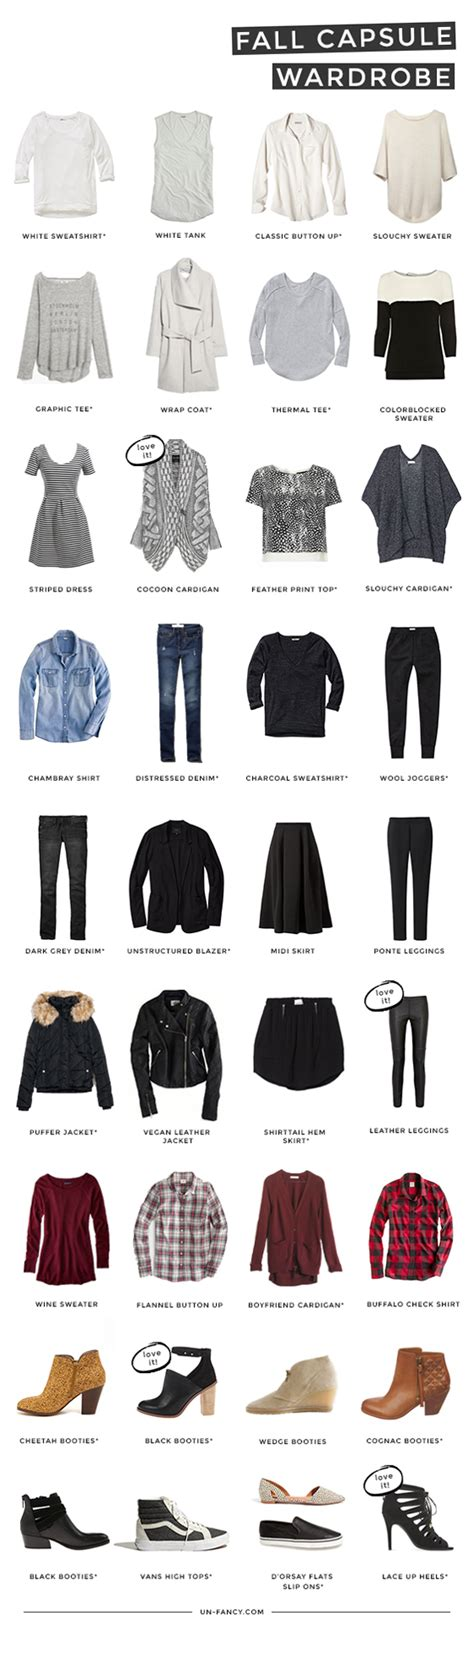 capsule wardrobe fall 2014 un fancy bloglovin